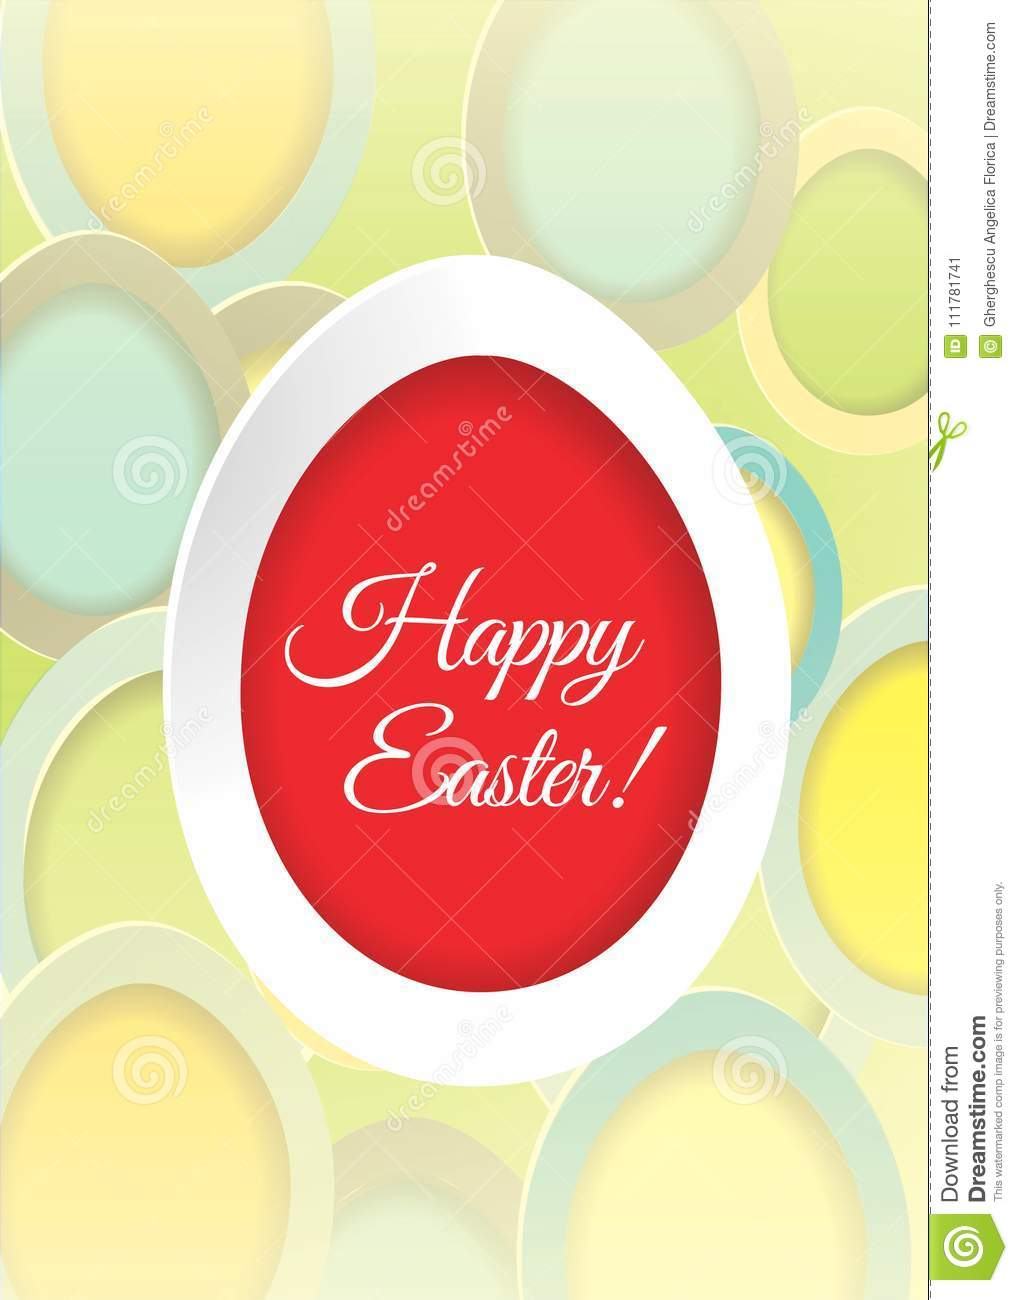 Easter card with Easter egg and eggs background